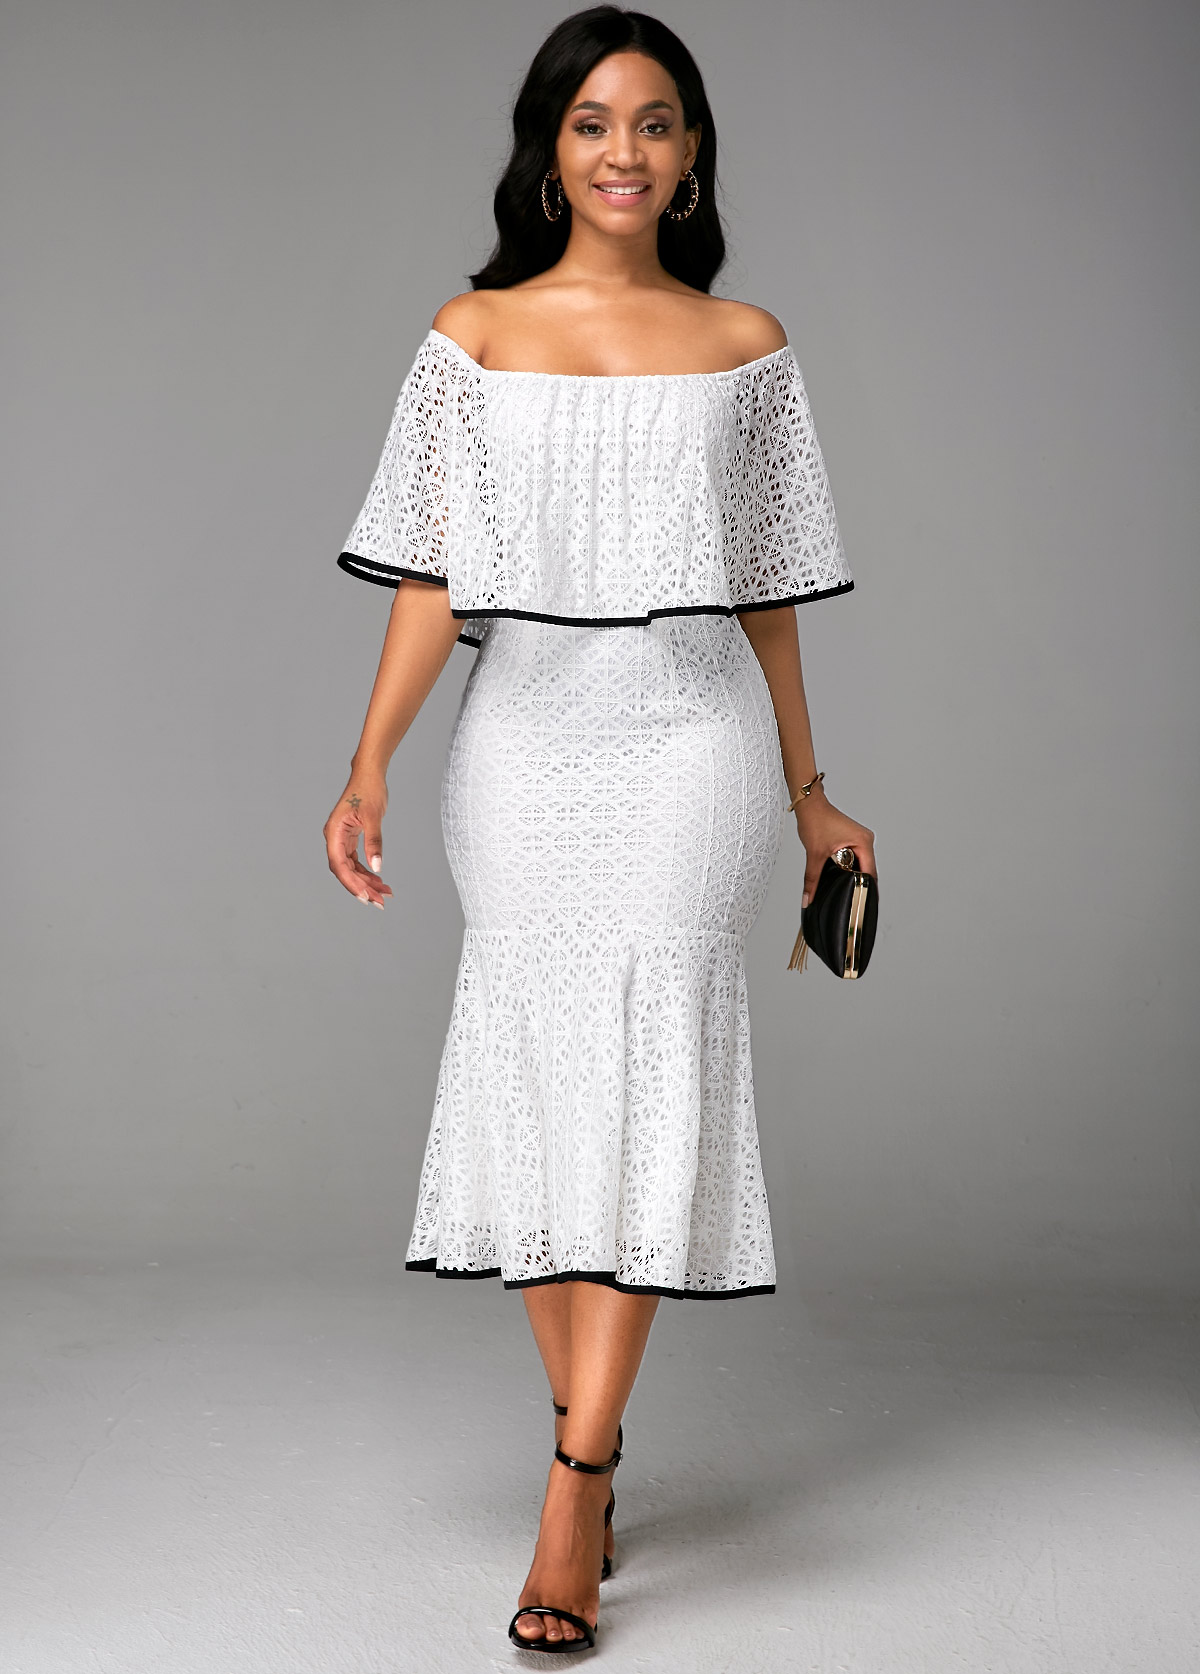 Boat Neck Ruffle Overlay White Lace Dress